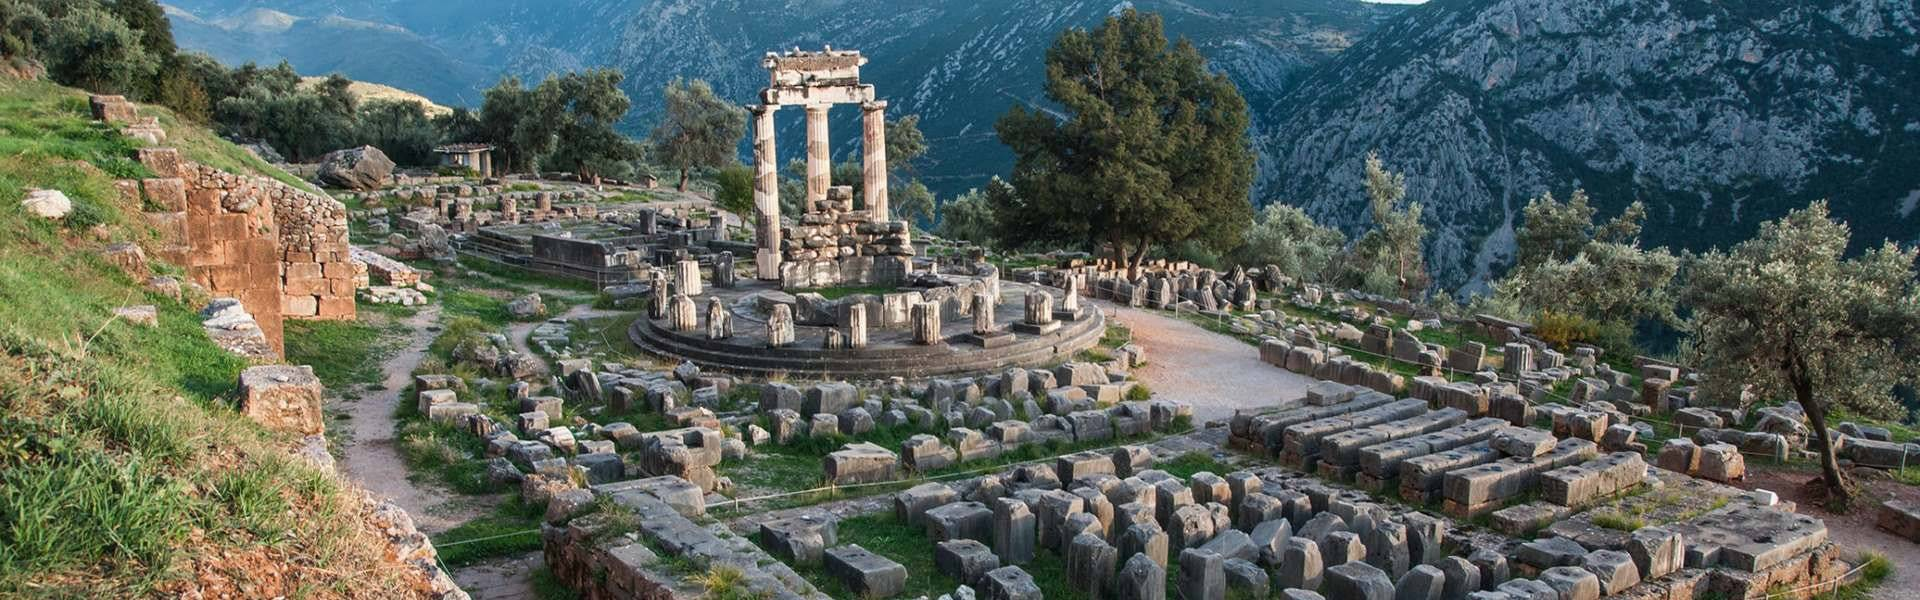 delphi temple of apollo